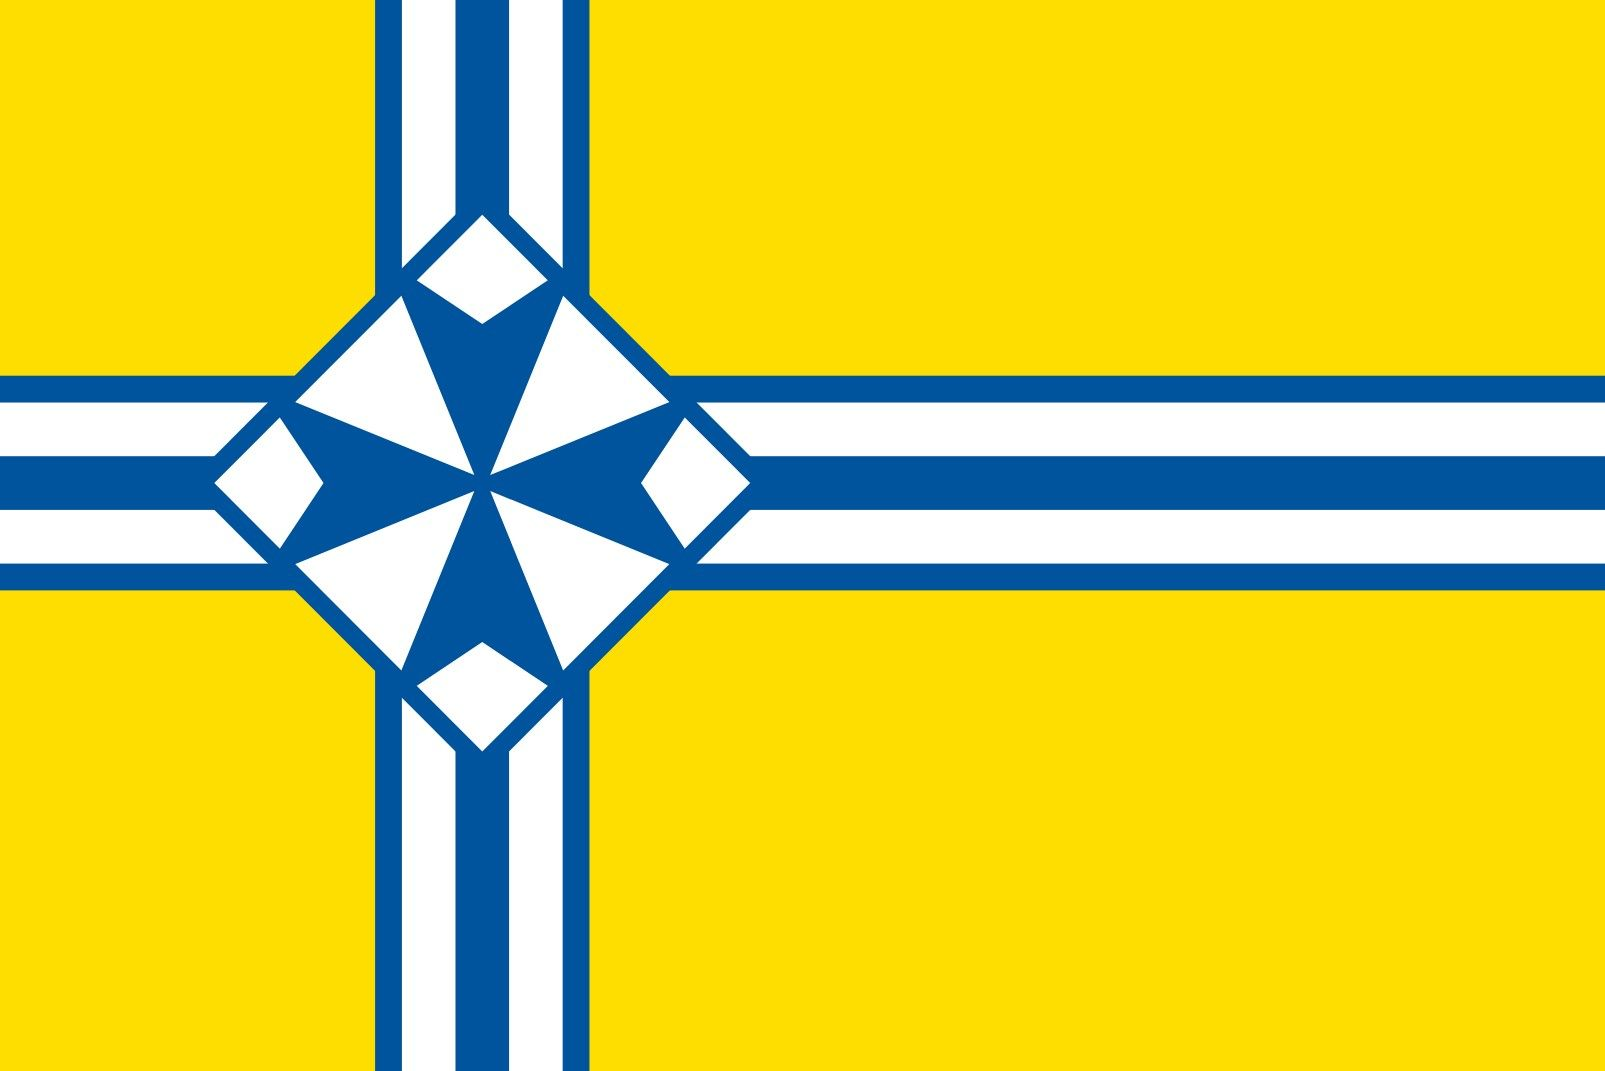 Seventh Flag Of Swedish Country Historical Flags Flag Design Flag